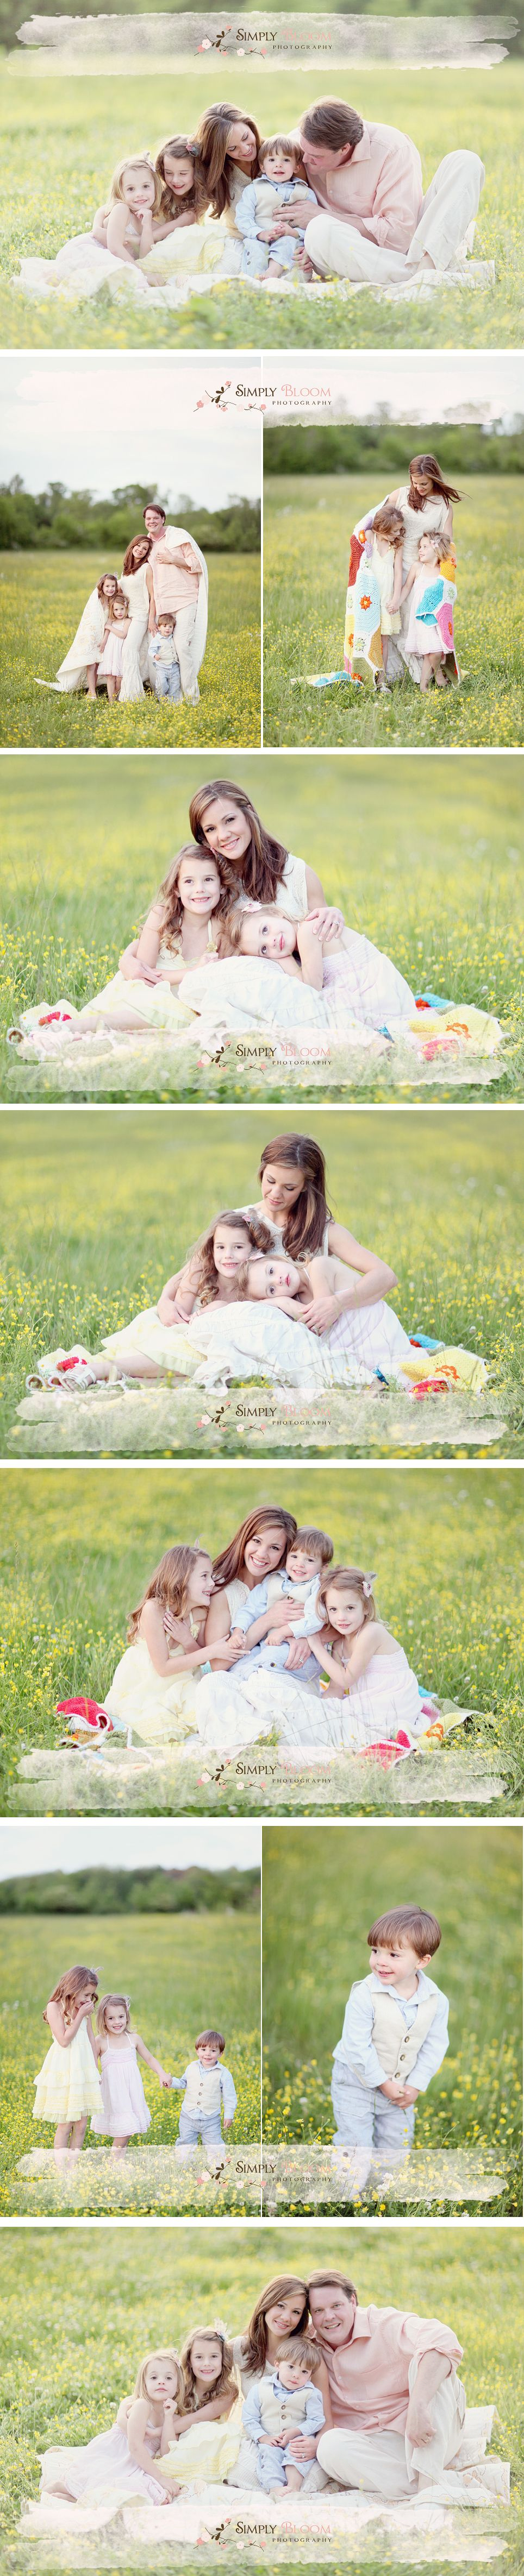 huntsville family photos, huntsville alabama family and childern ...